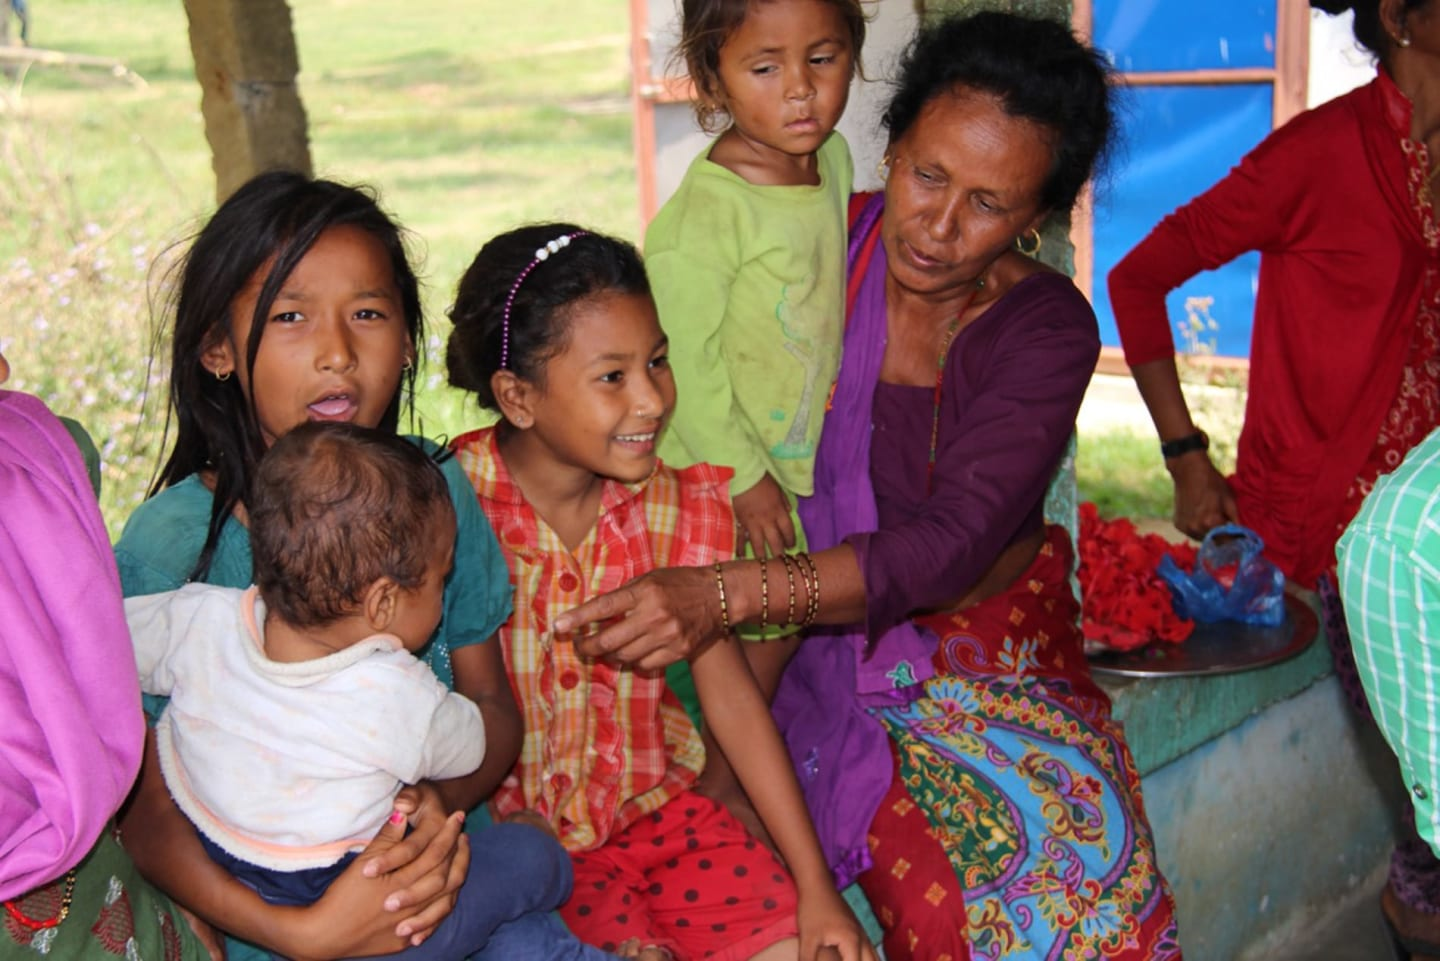 Shaping Young Minds Foundation helping kids in Nepal